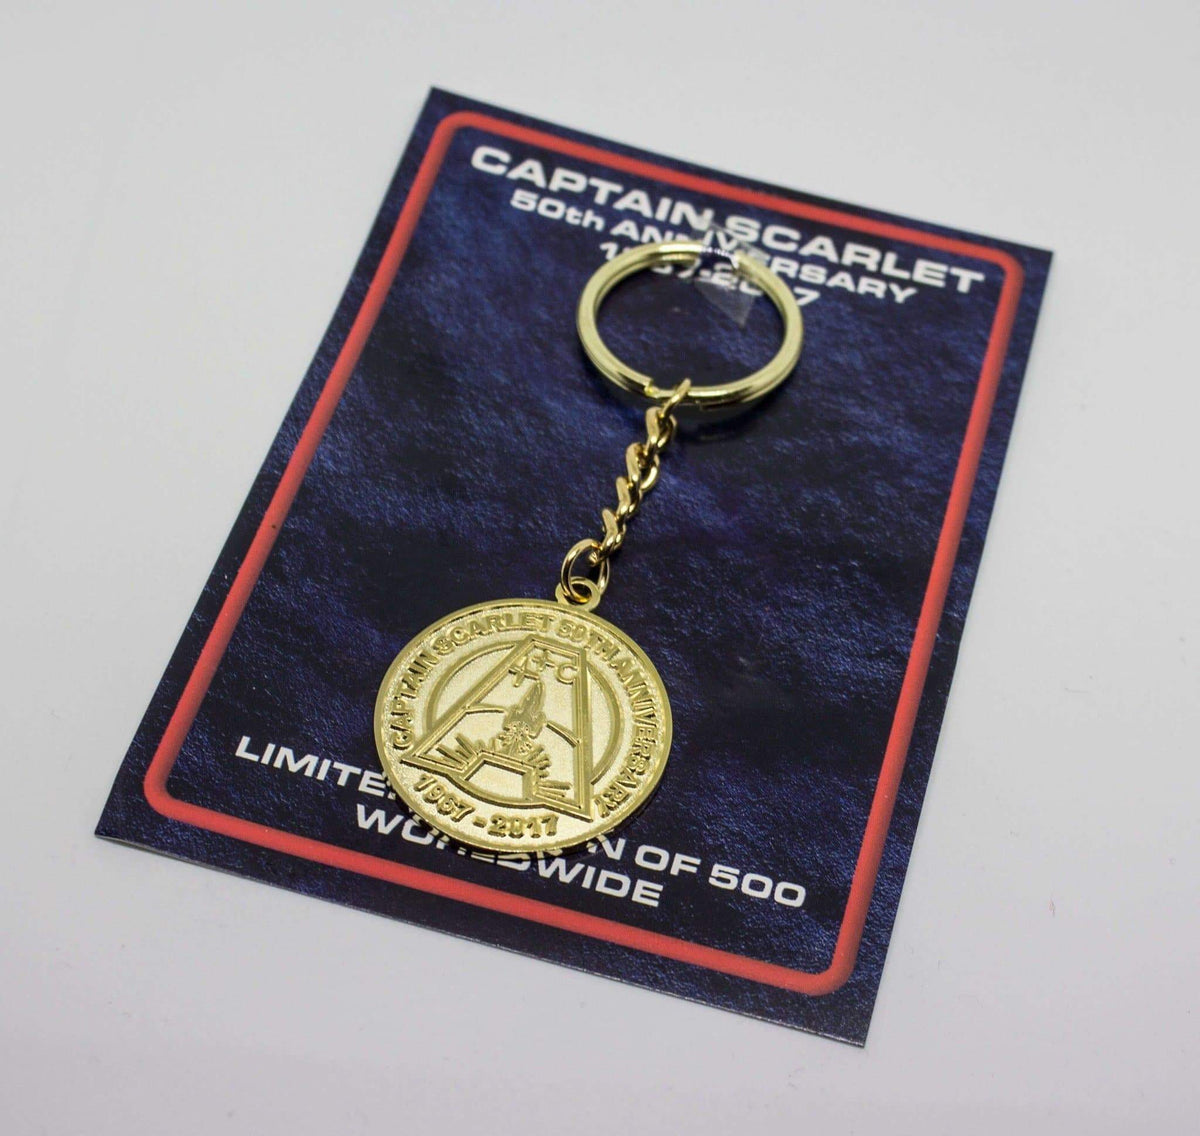 Captain Scarlet 50th Anniversary Keyring [Limited Edition and Exclusive] - The Gerry Anderson Store